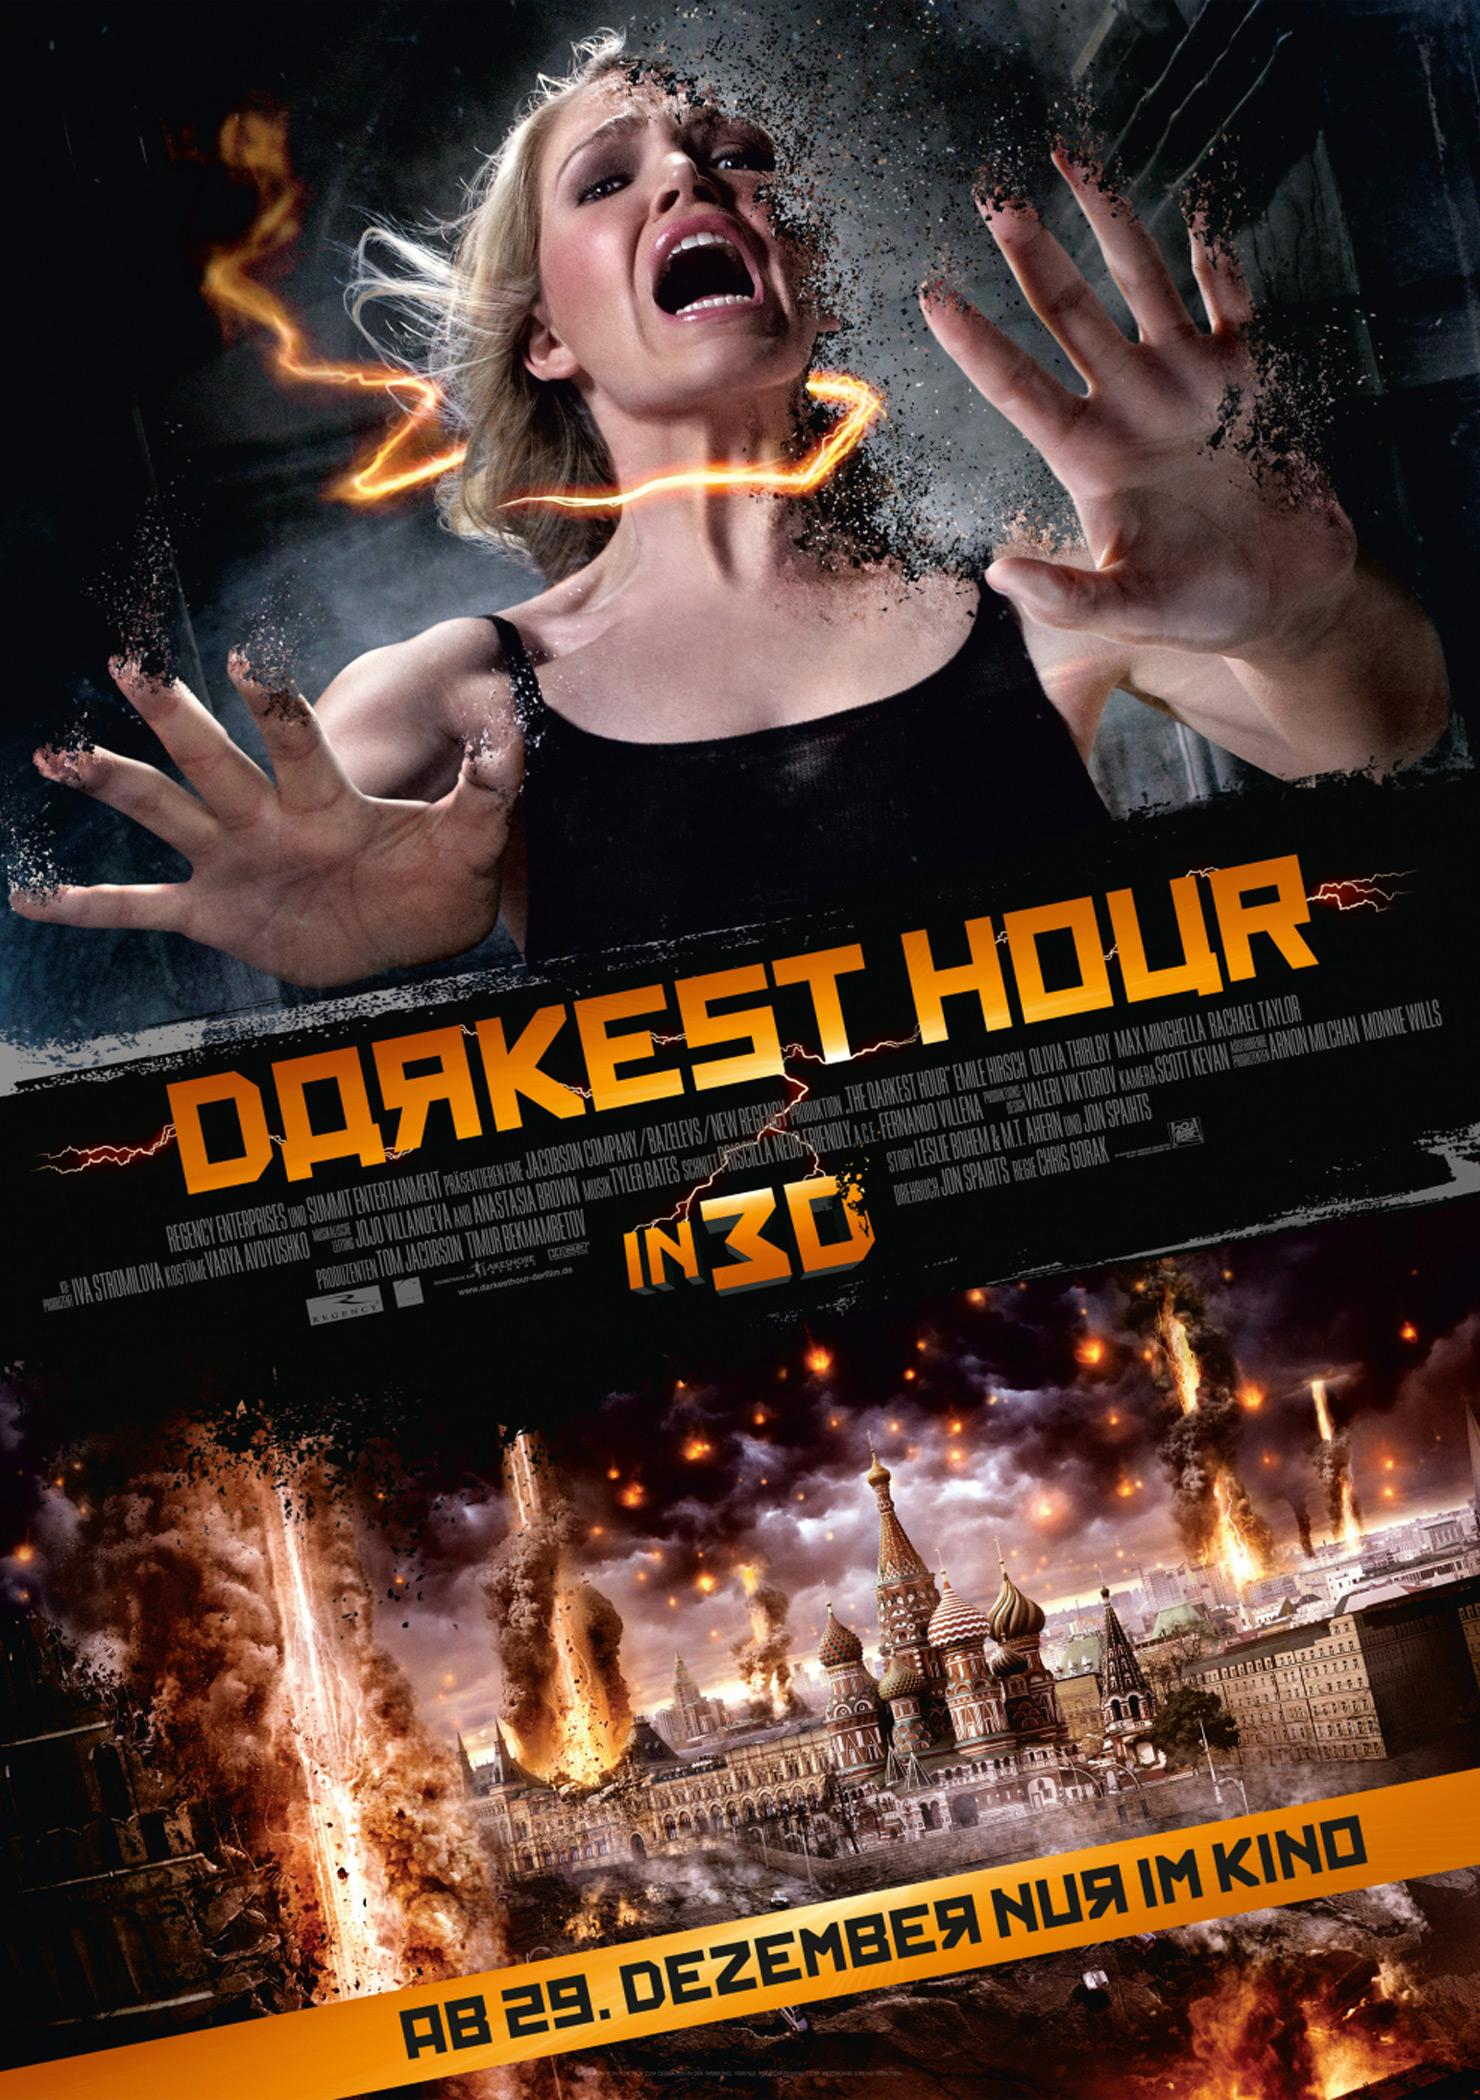 Darkest Hour (Poster)